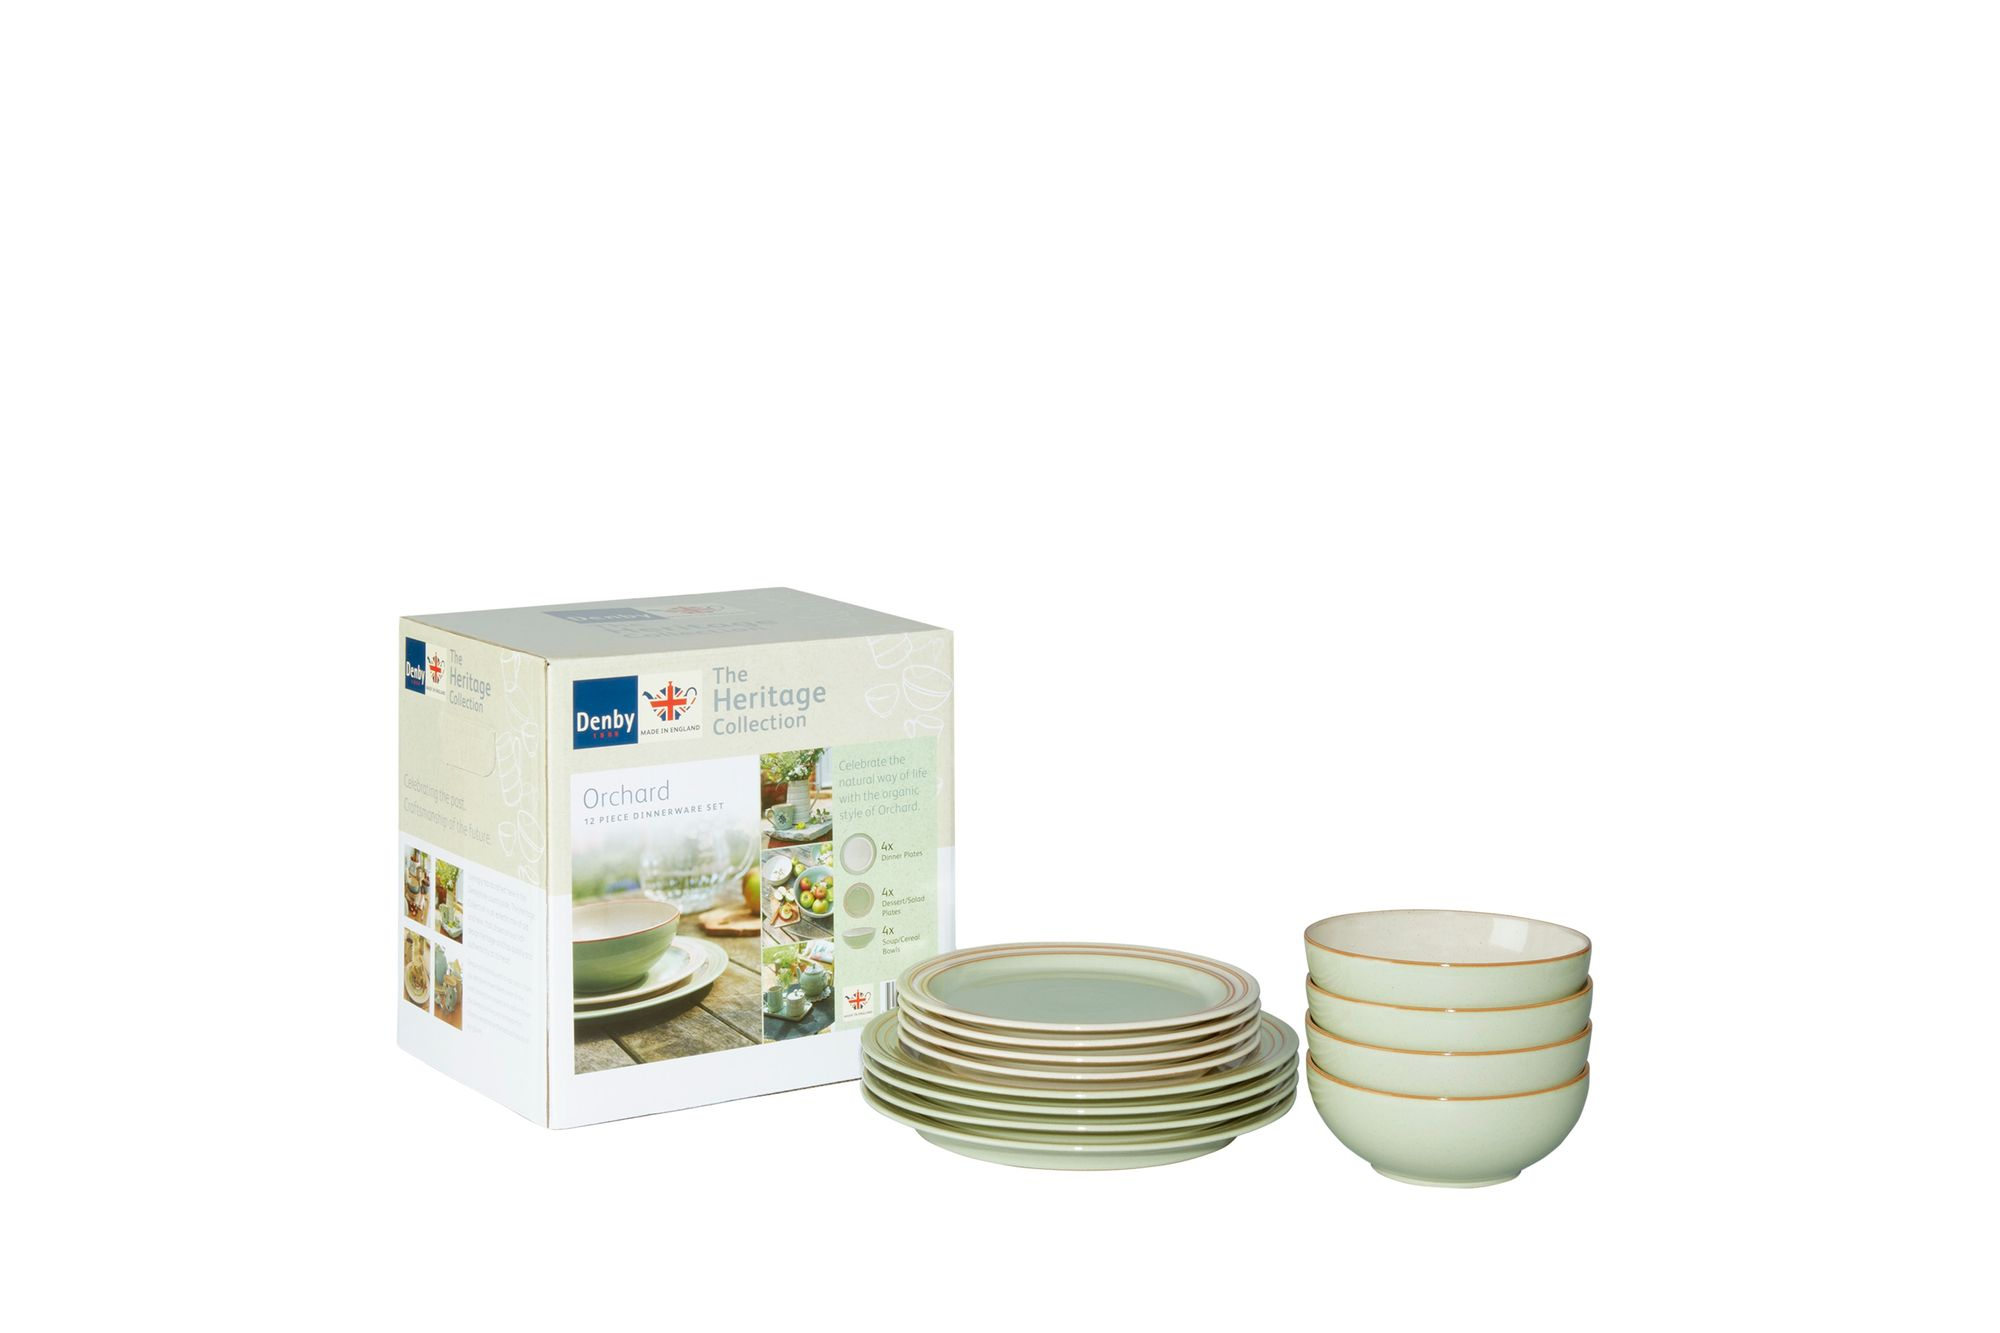 Denby Heritage Orchard 12 Piece Set 4 x Dinner Plate, 4 x Medium Plate, 4 x Soup /Cereal Bowl thumb 1